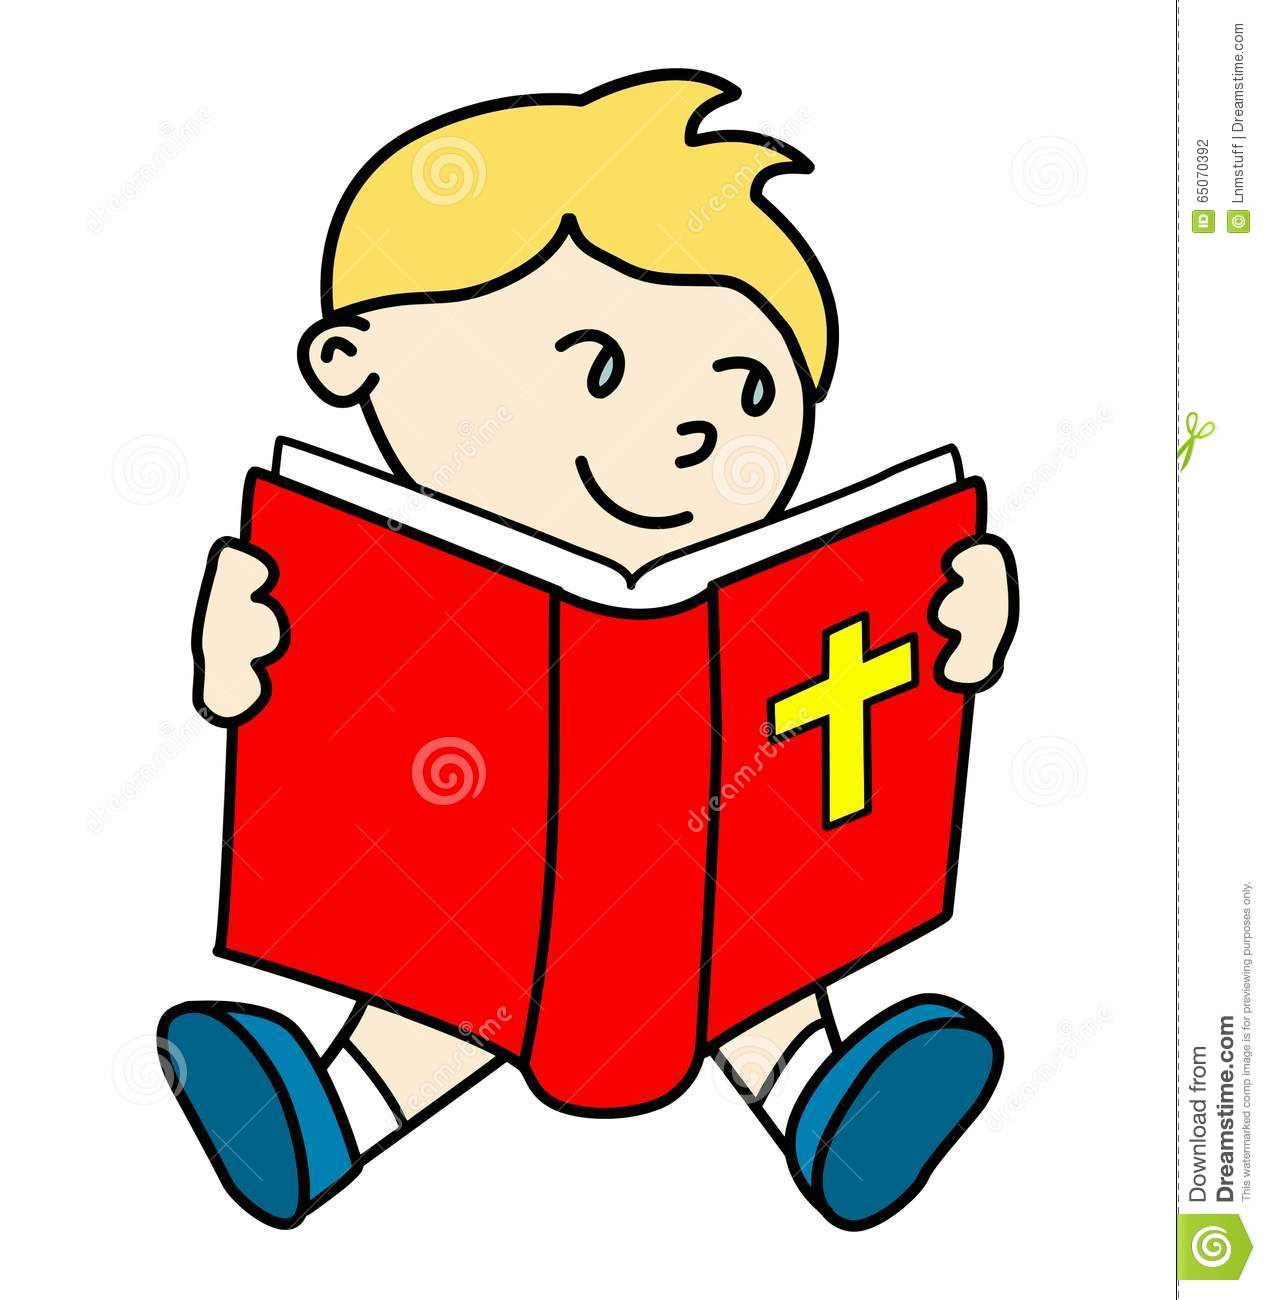 Boy clipart bible Image: Bible BBCpersian7 for Bible